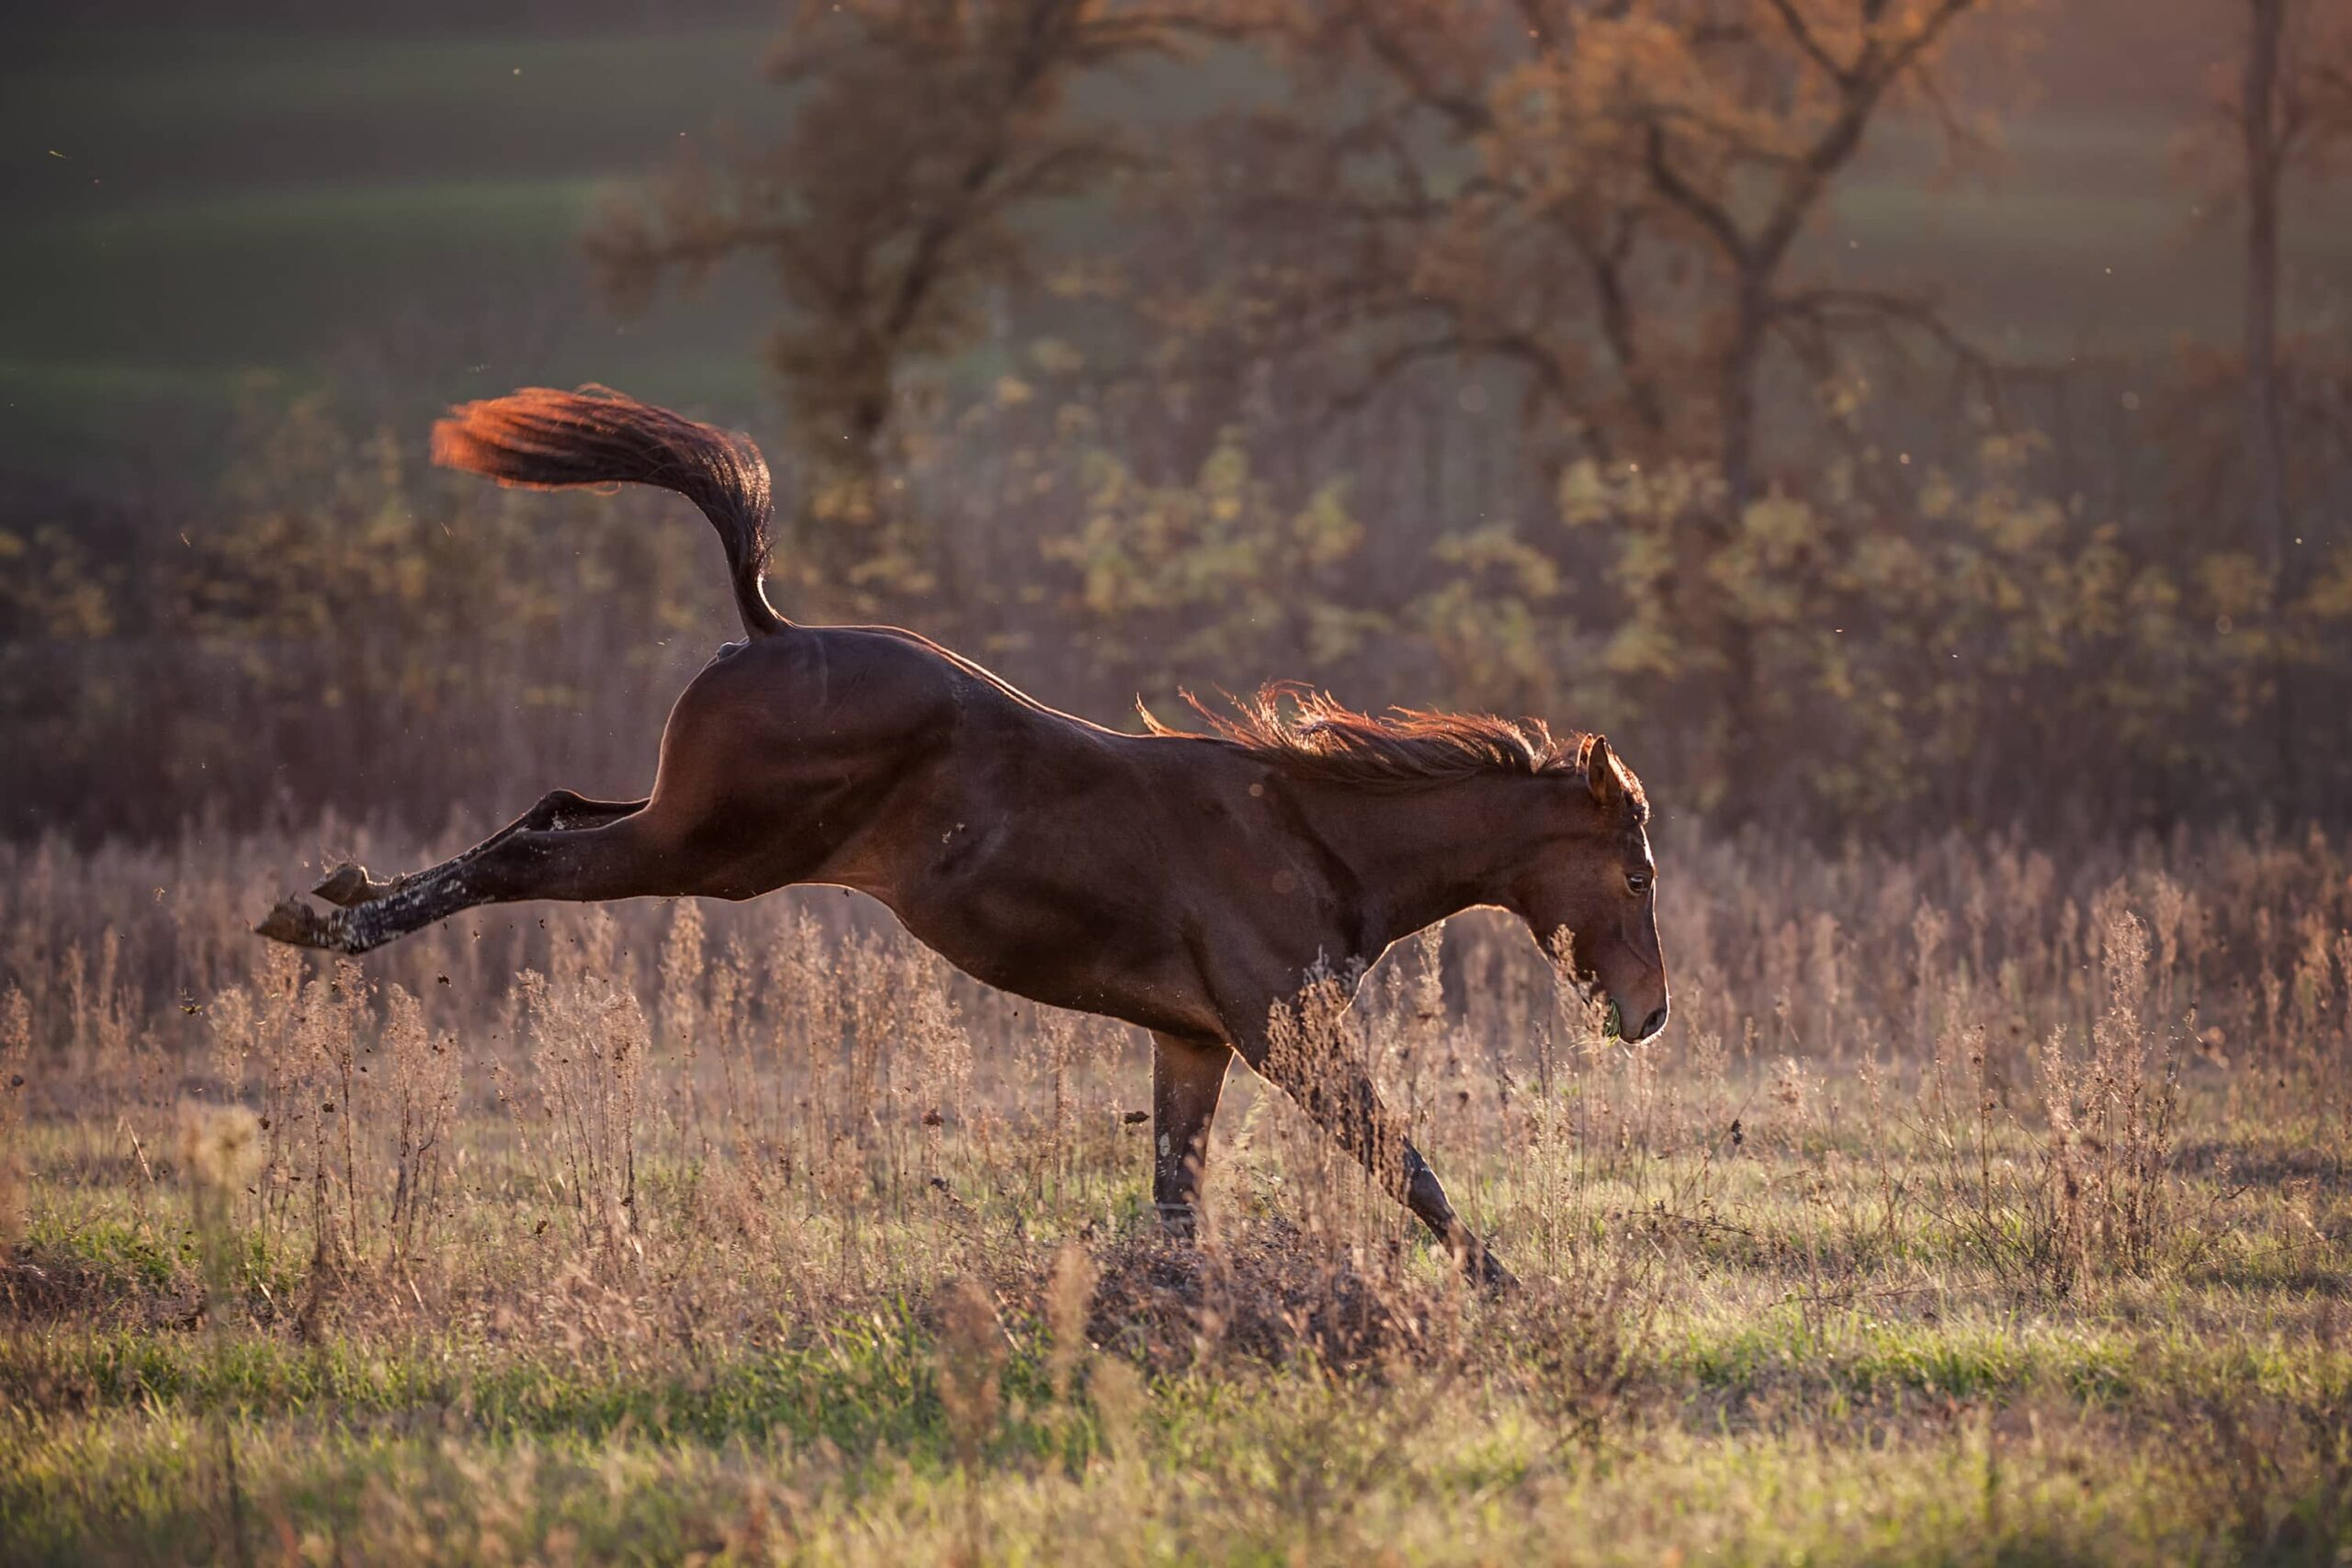 Horse kicking up its back legs and running on ranch land